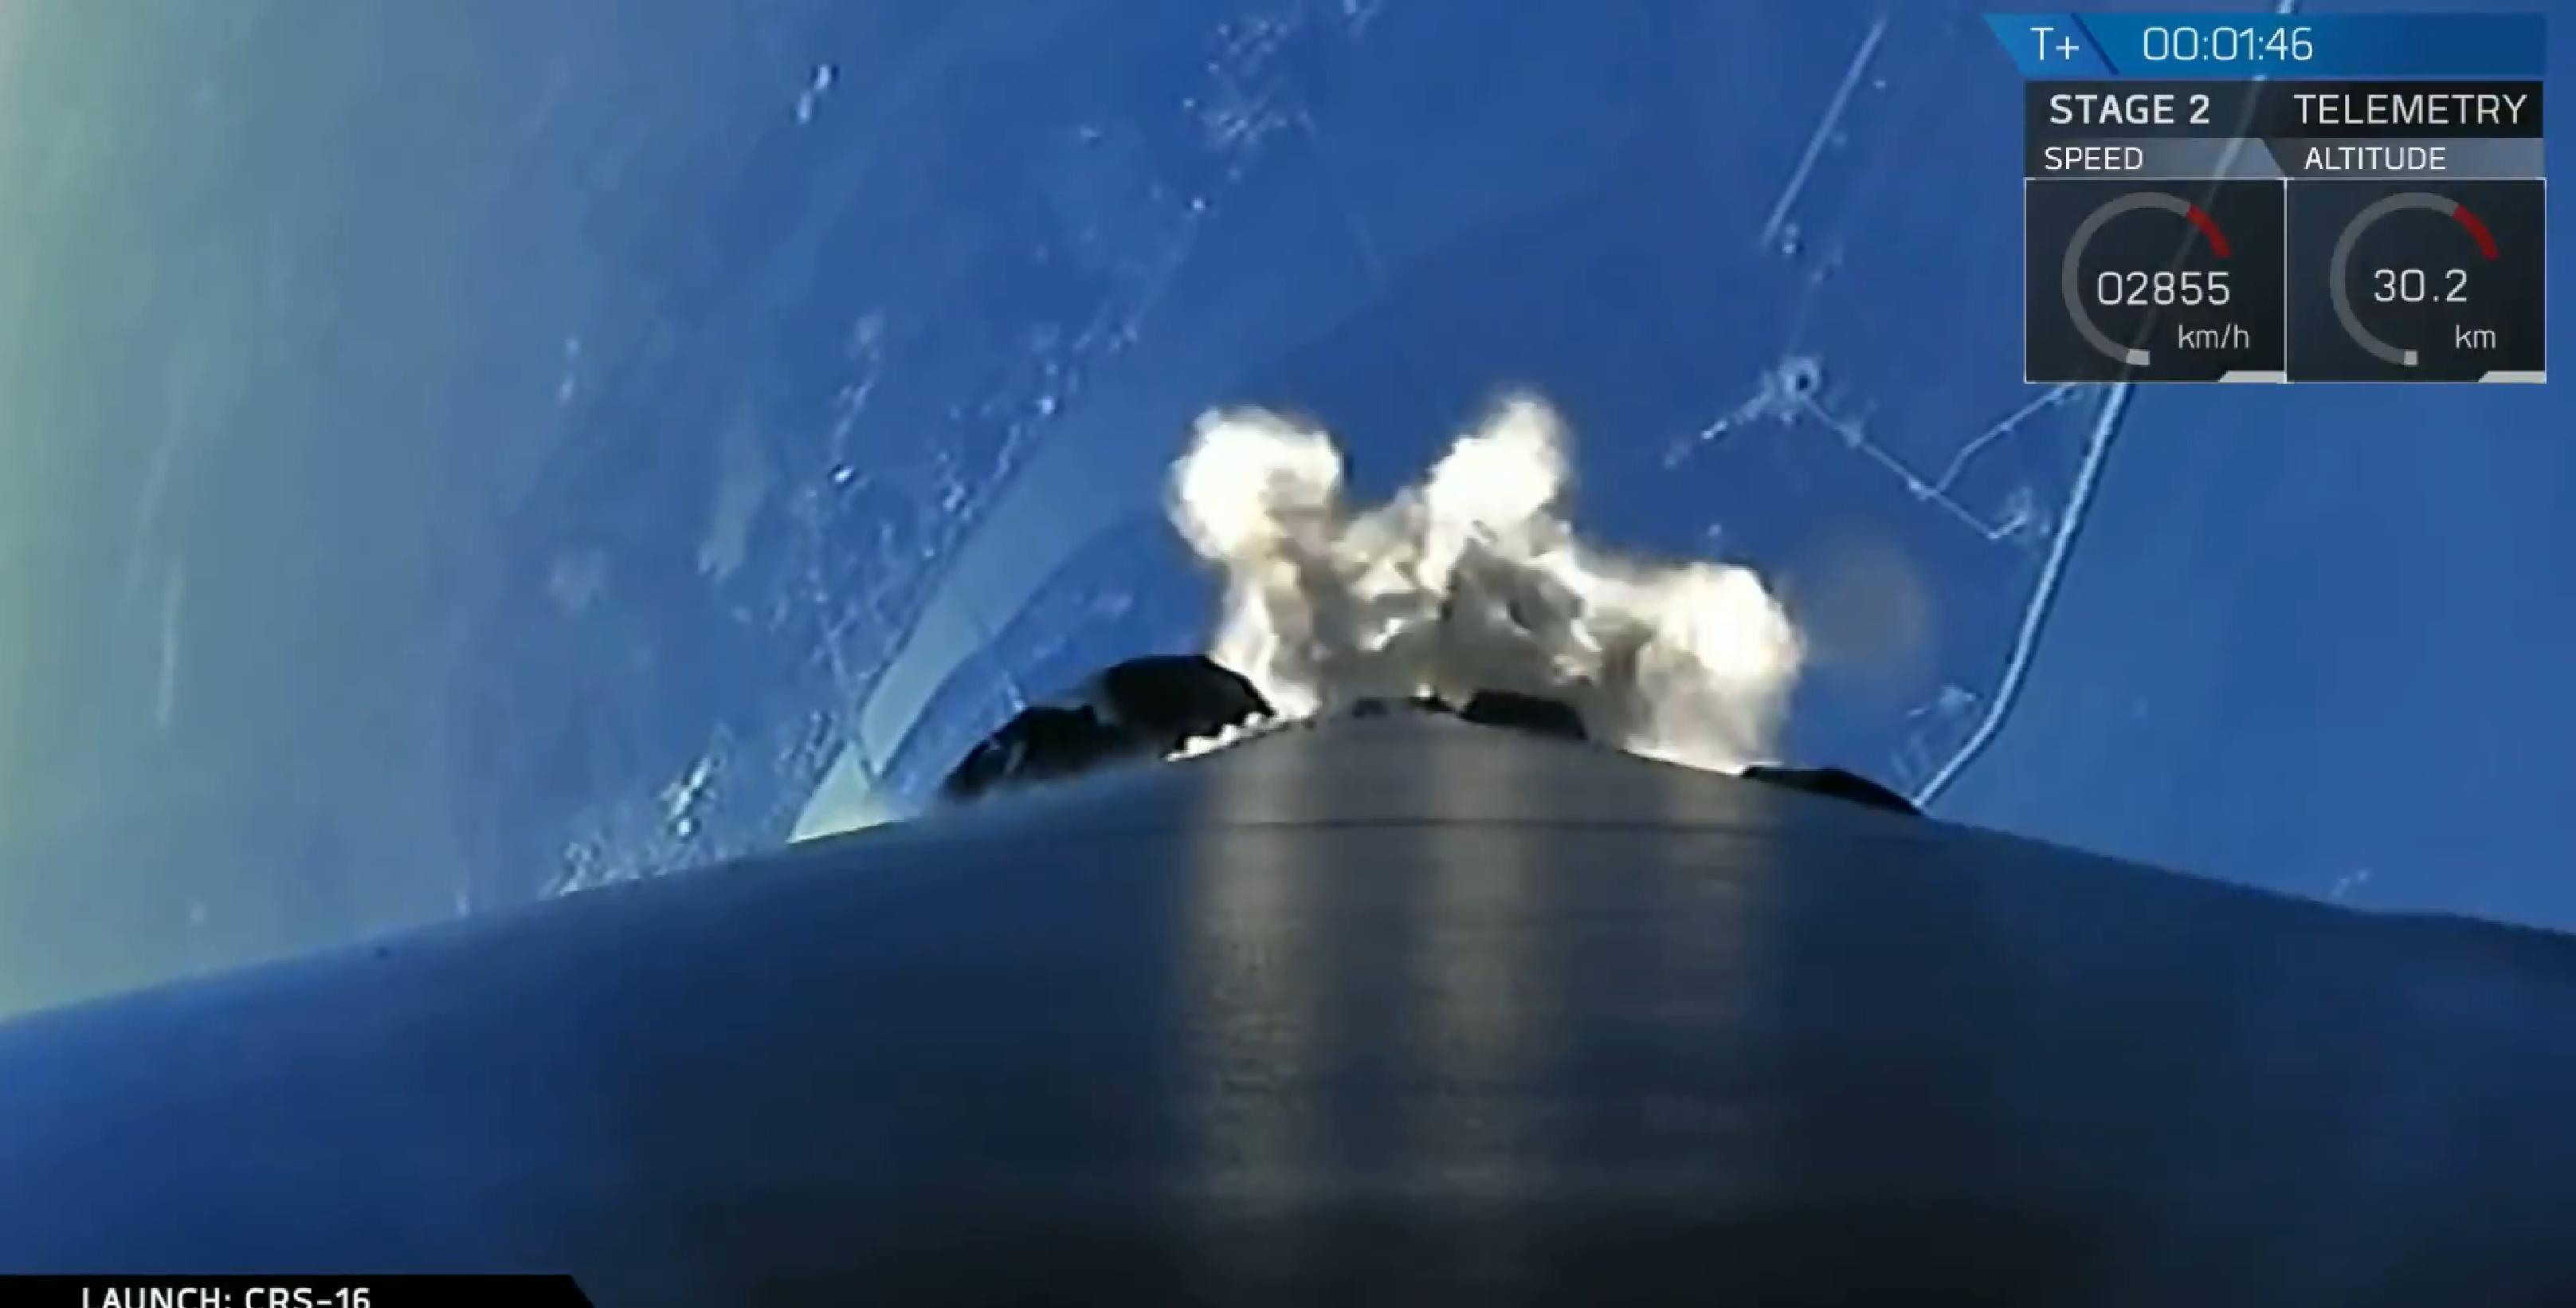 Falcon 9 B1050 CRS-16 launch (SpaceX) 1